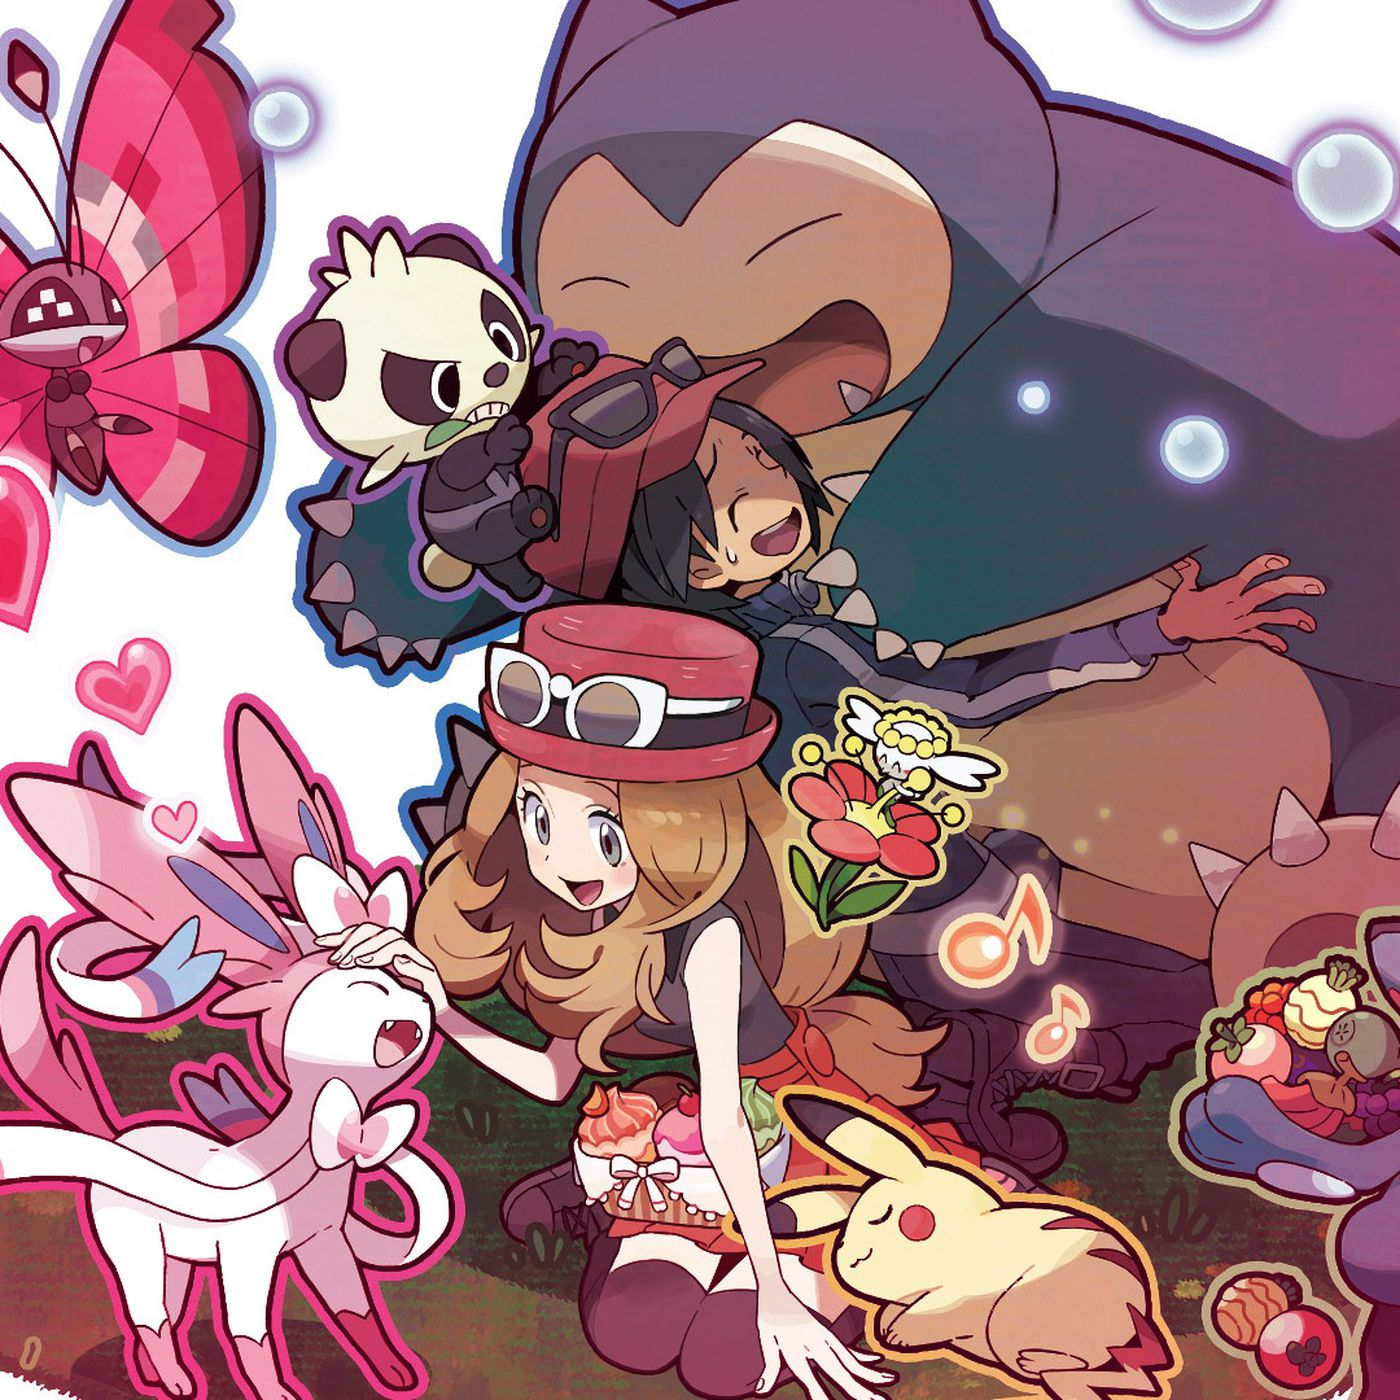 Uk Retailer Game Selling Pokemon X And Y Early Says Competitor Broke Street Date Polygon